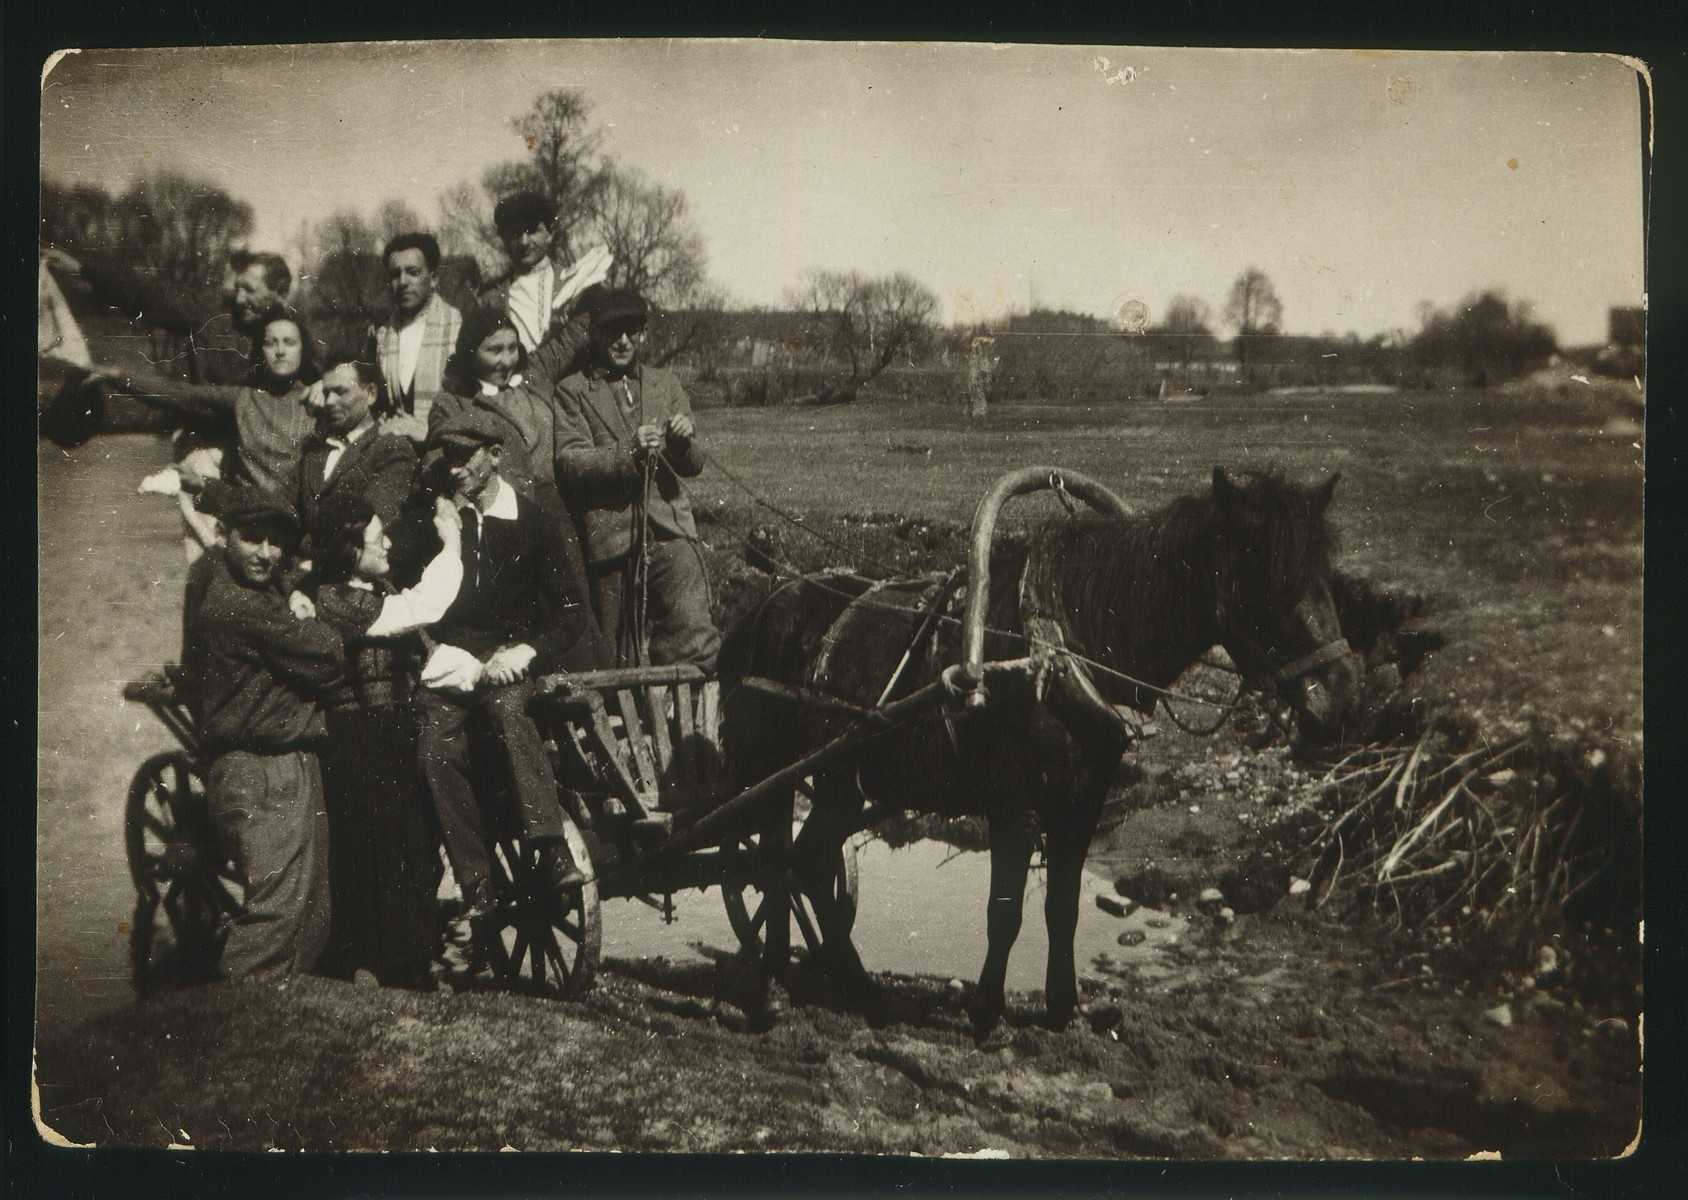 Members of a Hehalutz Zionist hachshara in Oszmiana on a horse-drawn cart.   Sara Plotnik is standing on the side of the cart and Yehiel Blacharowicz is in the back at the far left.  Sara and Yehiel were from Eisiskes.  Yehiel did not receive an immigration certificate to Palestine and was murdered in the September 1941 massacre. The fate of the others is unknown.